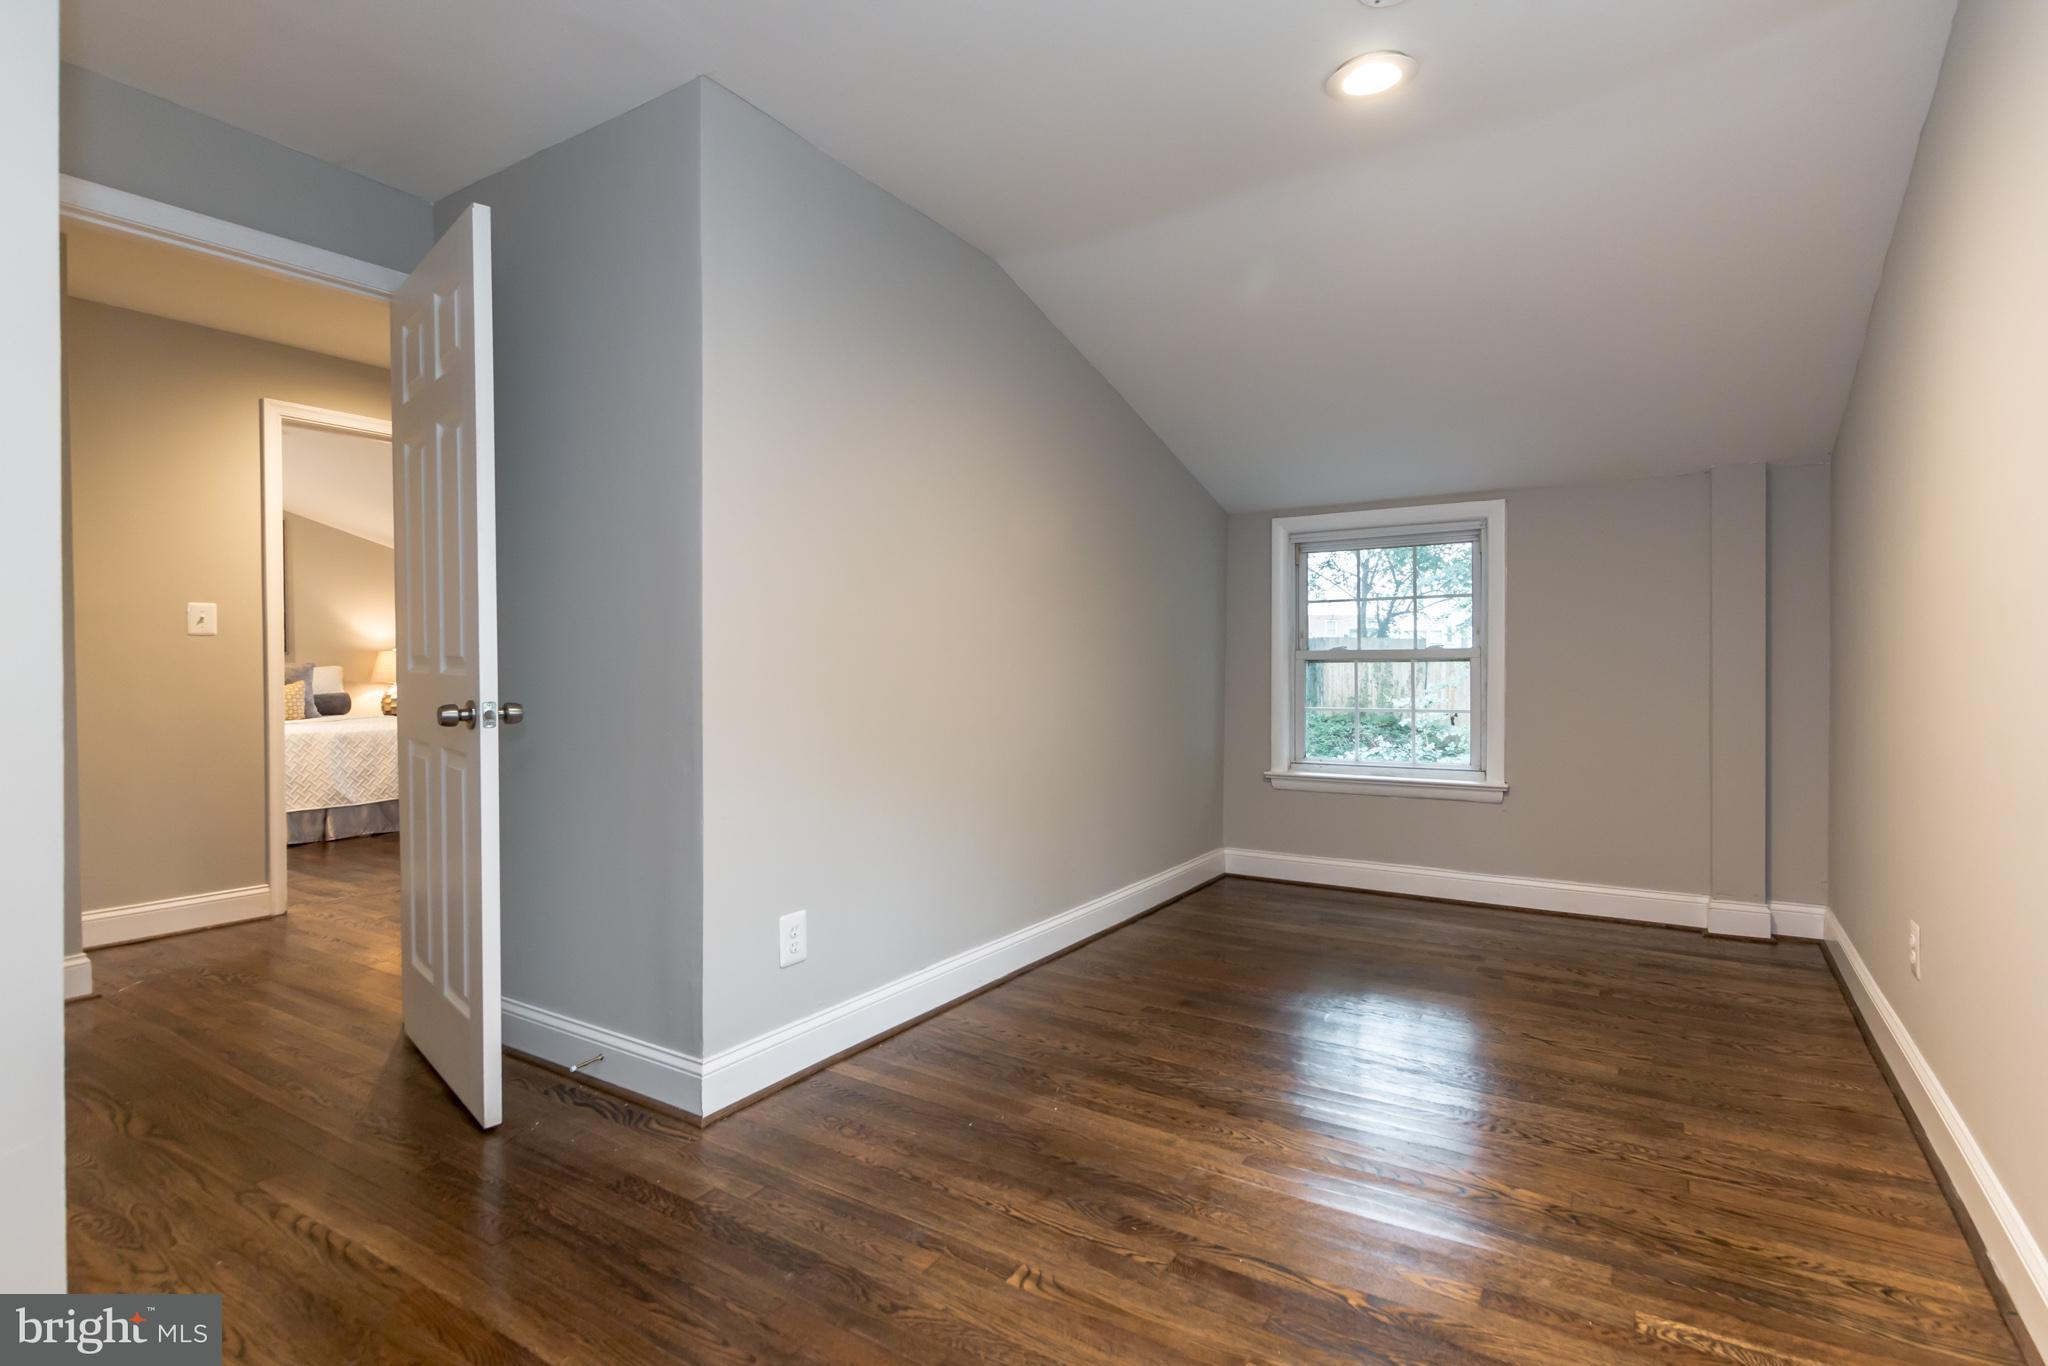 12212 JUDSON ROAD, Silver Spring, MD, 20902, MLS # 1000281660 | RE ...